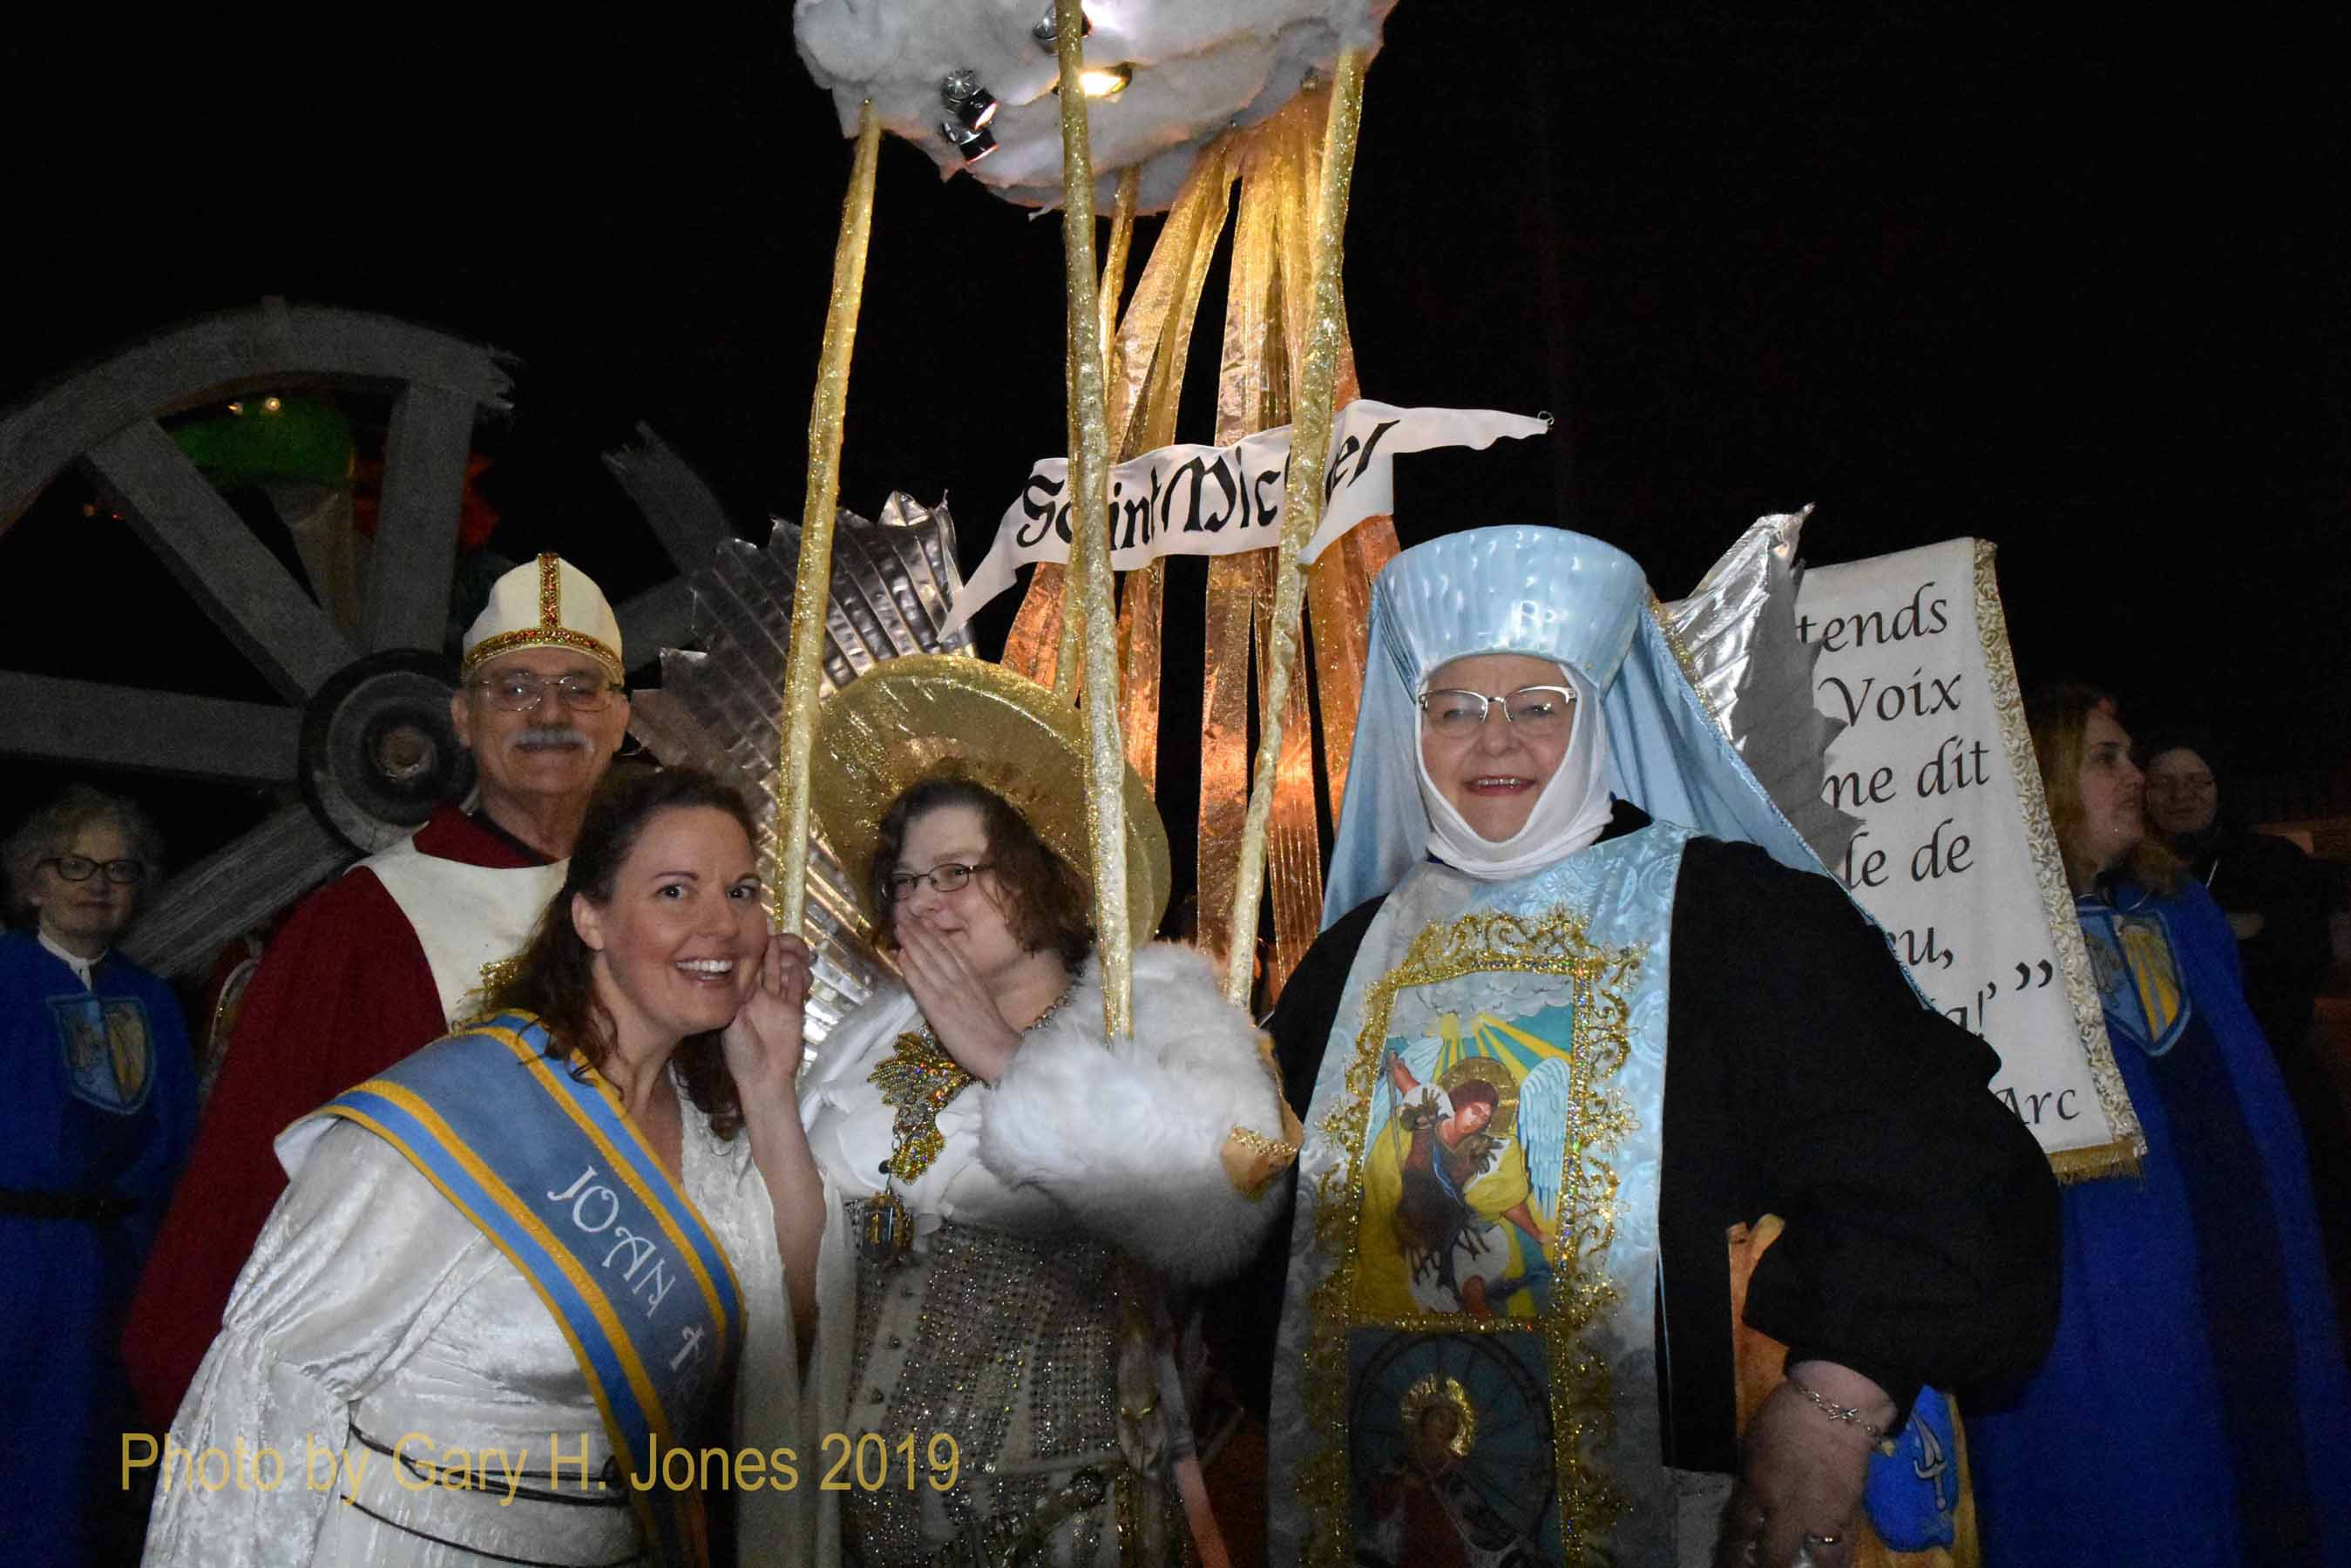 NOLA Joan of Arc parade staging